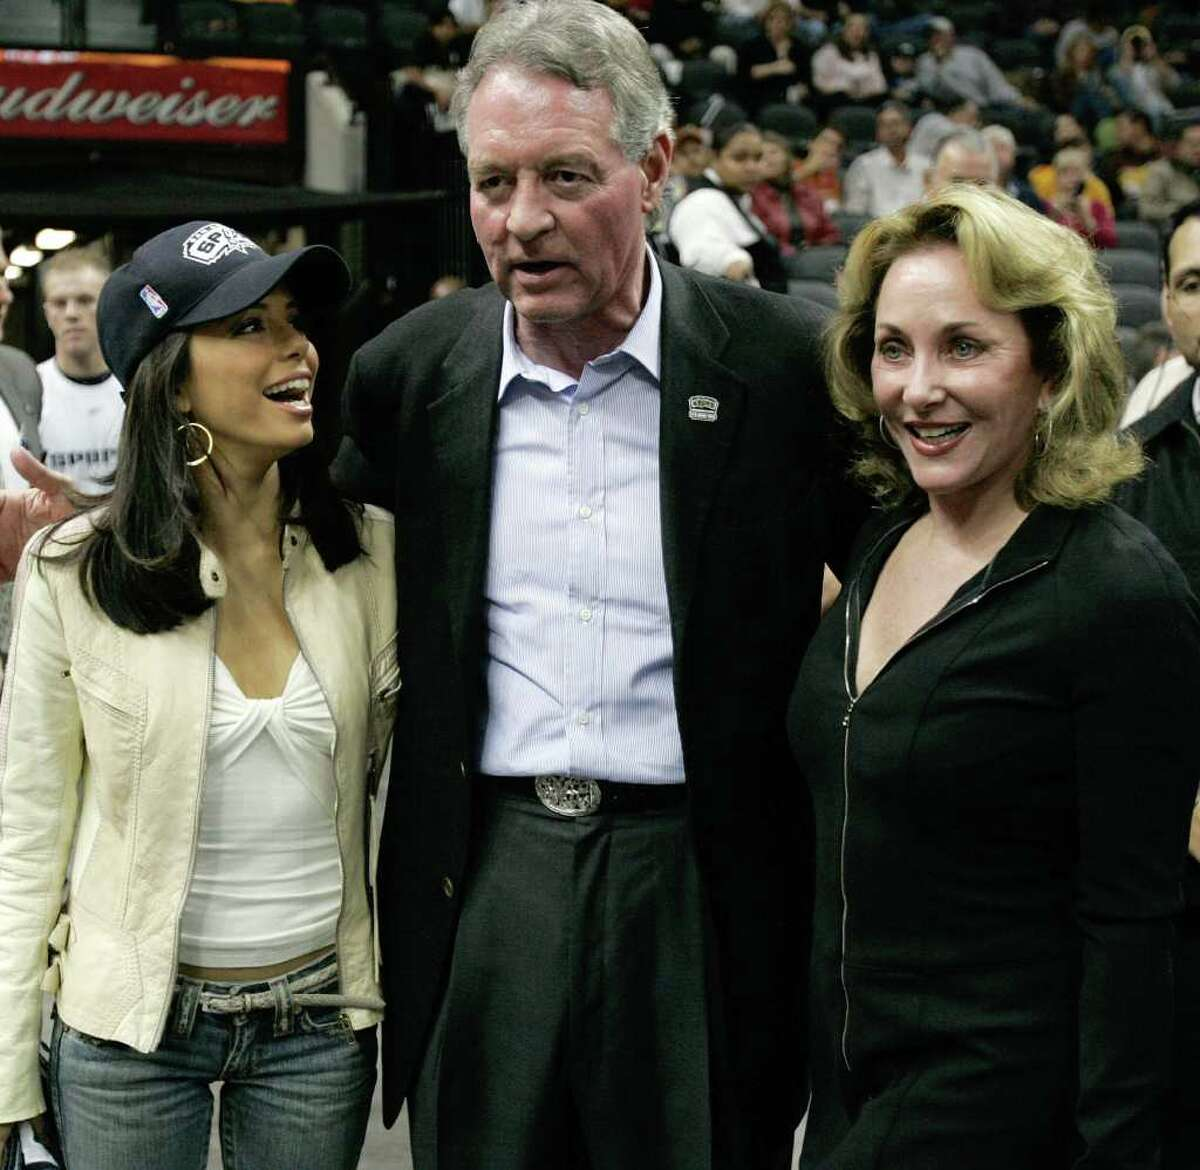 San Antonio Spurs Chairman and CEO Peter Holt and his wife, Julianna (right), talks with actress Eva Longoria at the AT&T Center on Nov. 24, 2004.